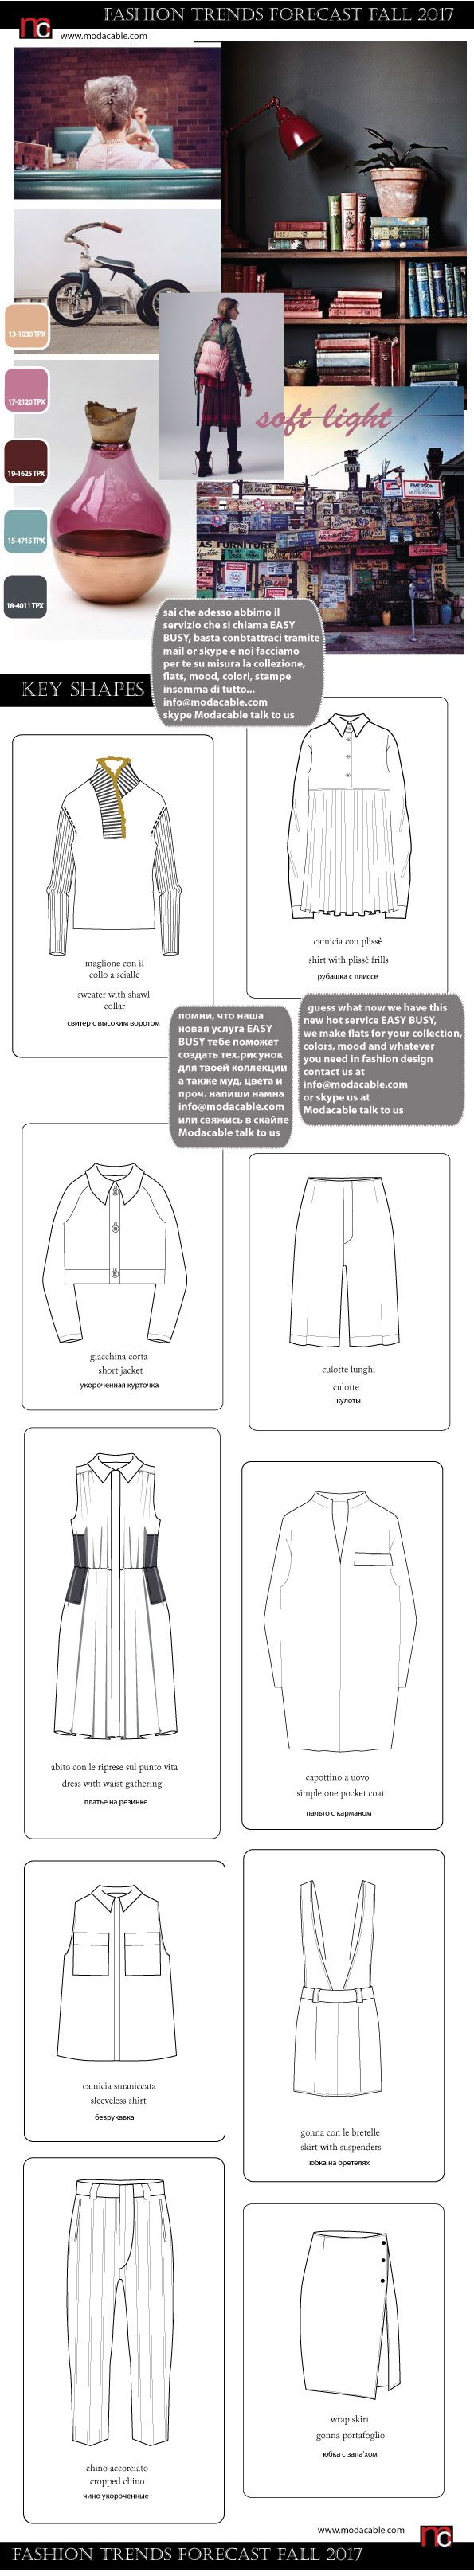 17 best images about fashion trend 2017 2018 on pinterest Coloring book zip vk